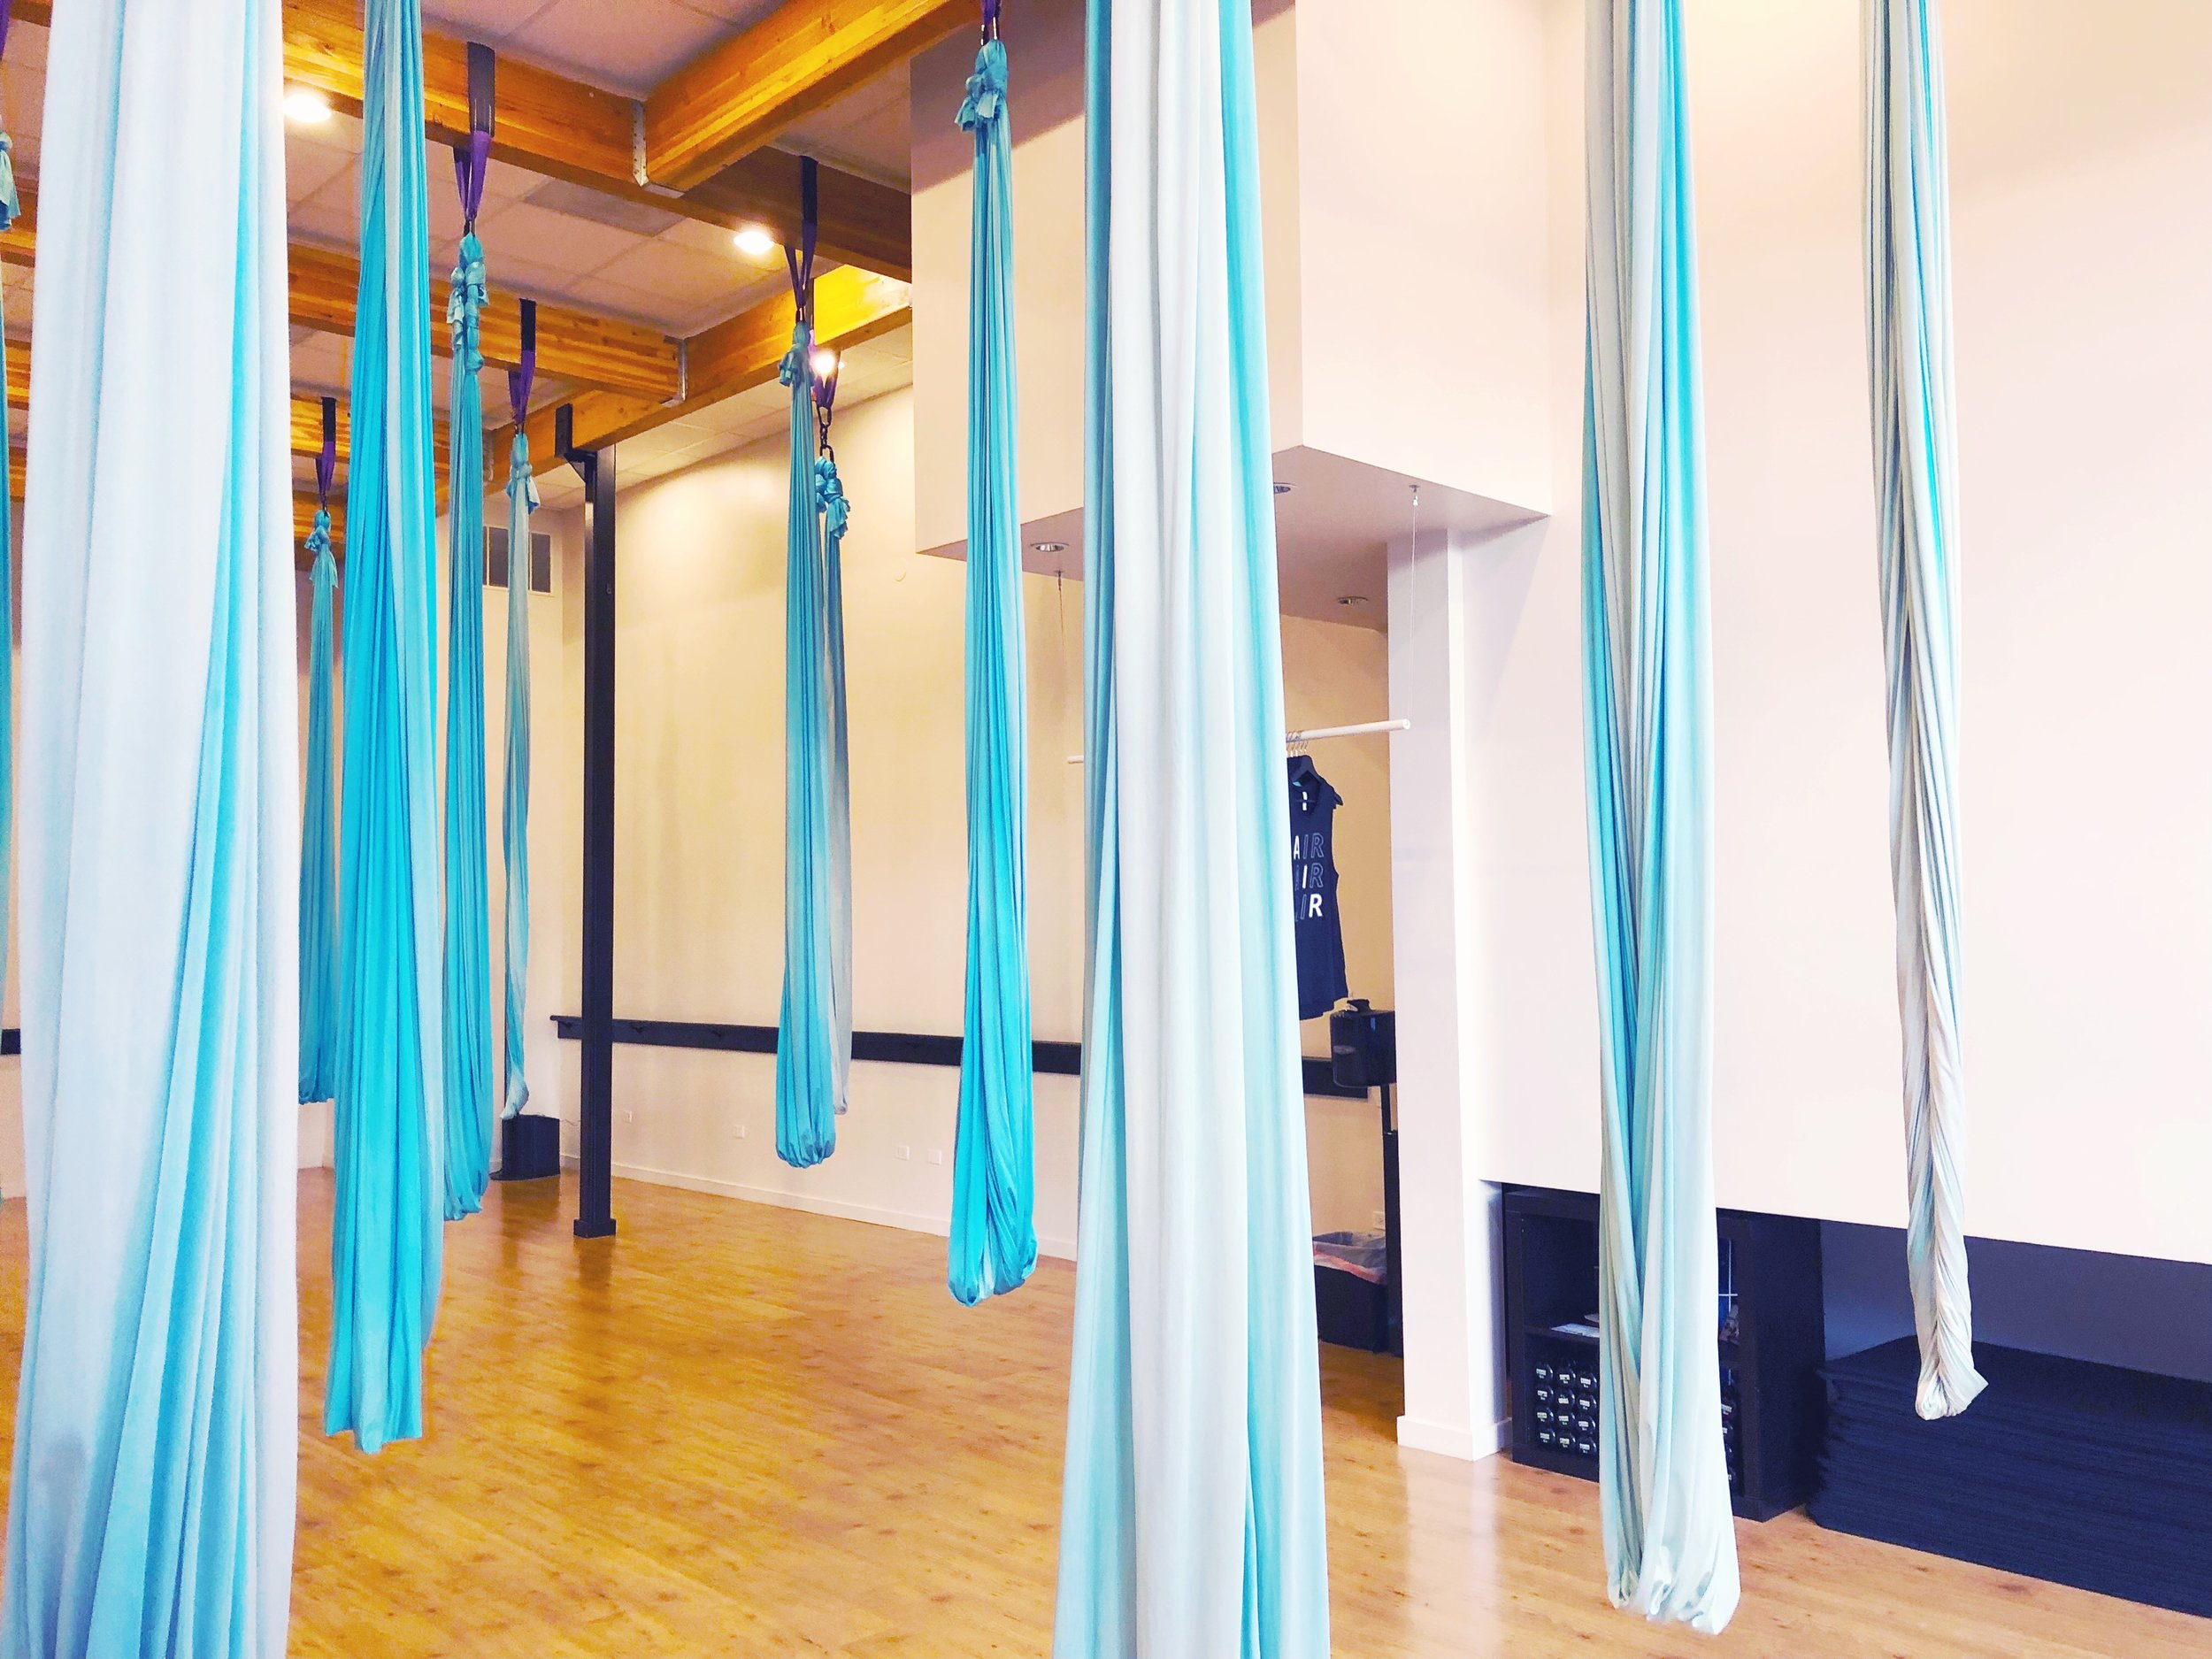 Aerial hammocks at AIR fitness class in Chicago.